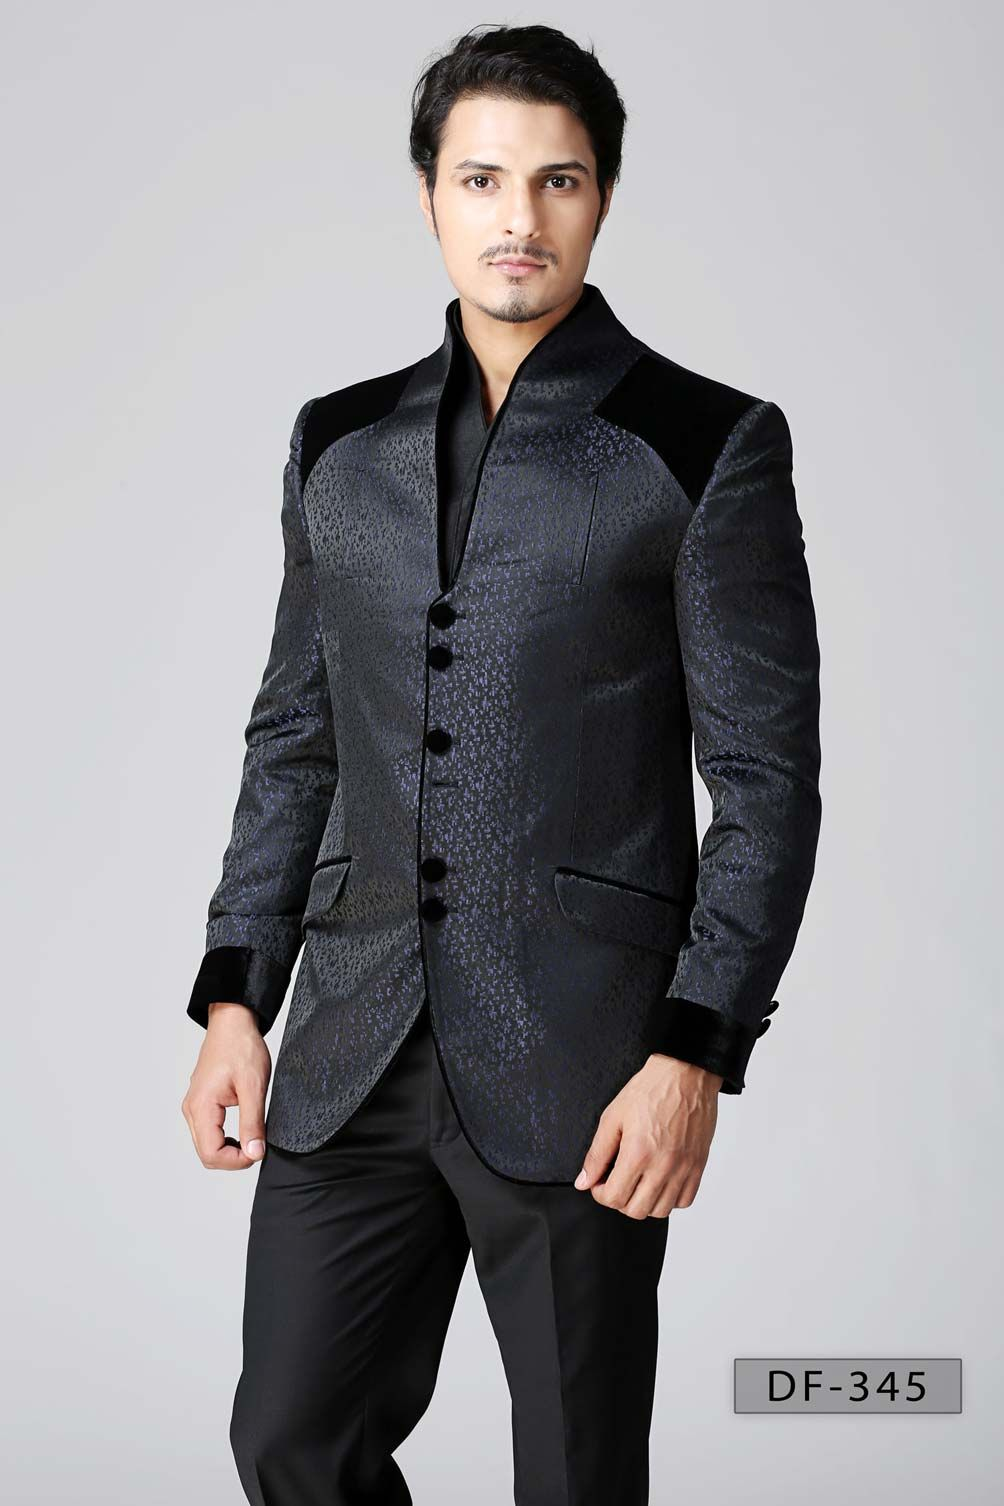 menscoutureclothingimages designer suits for